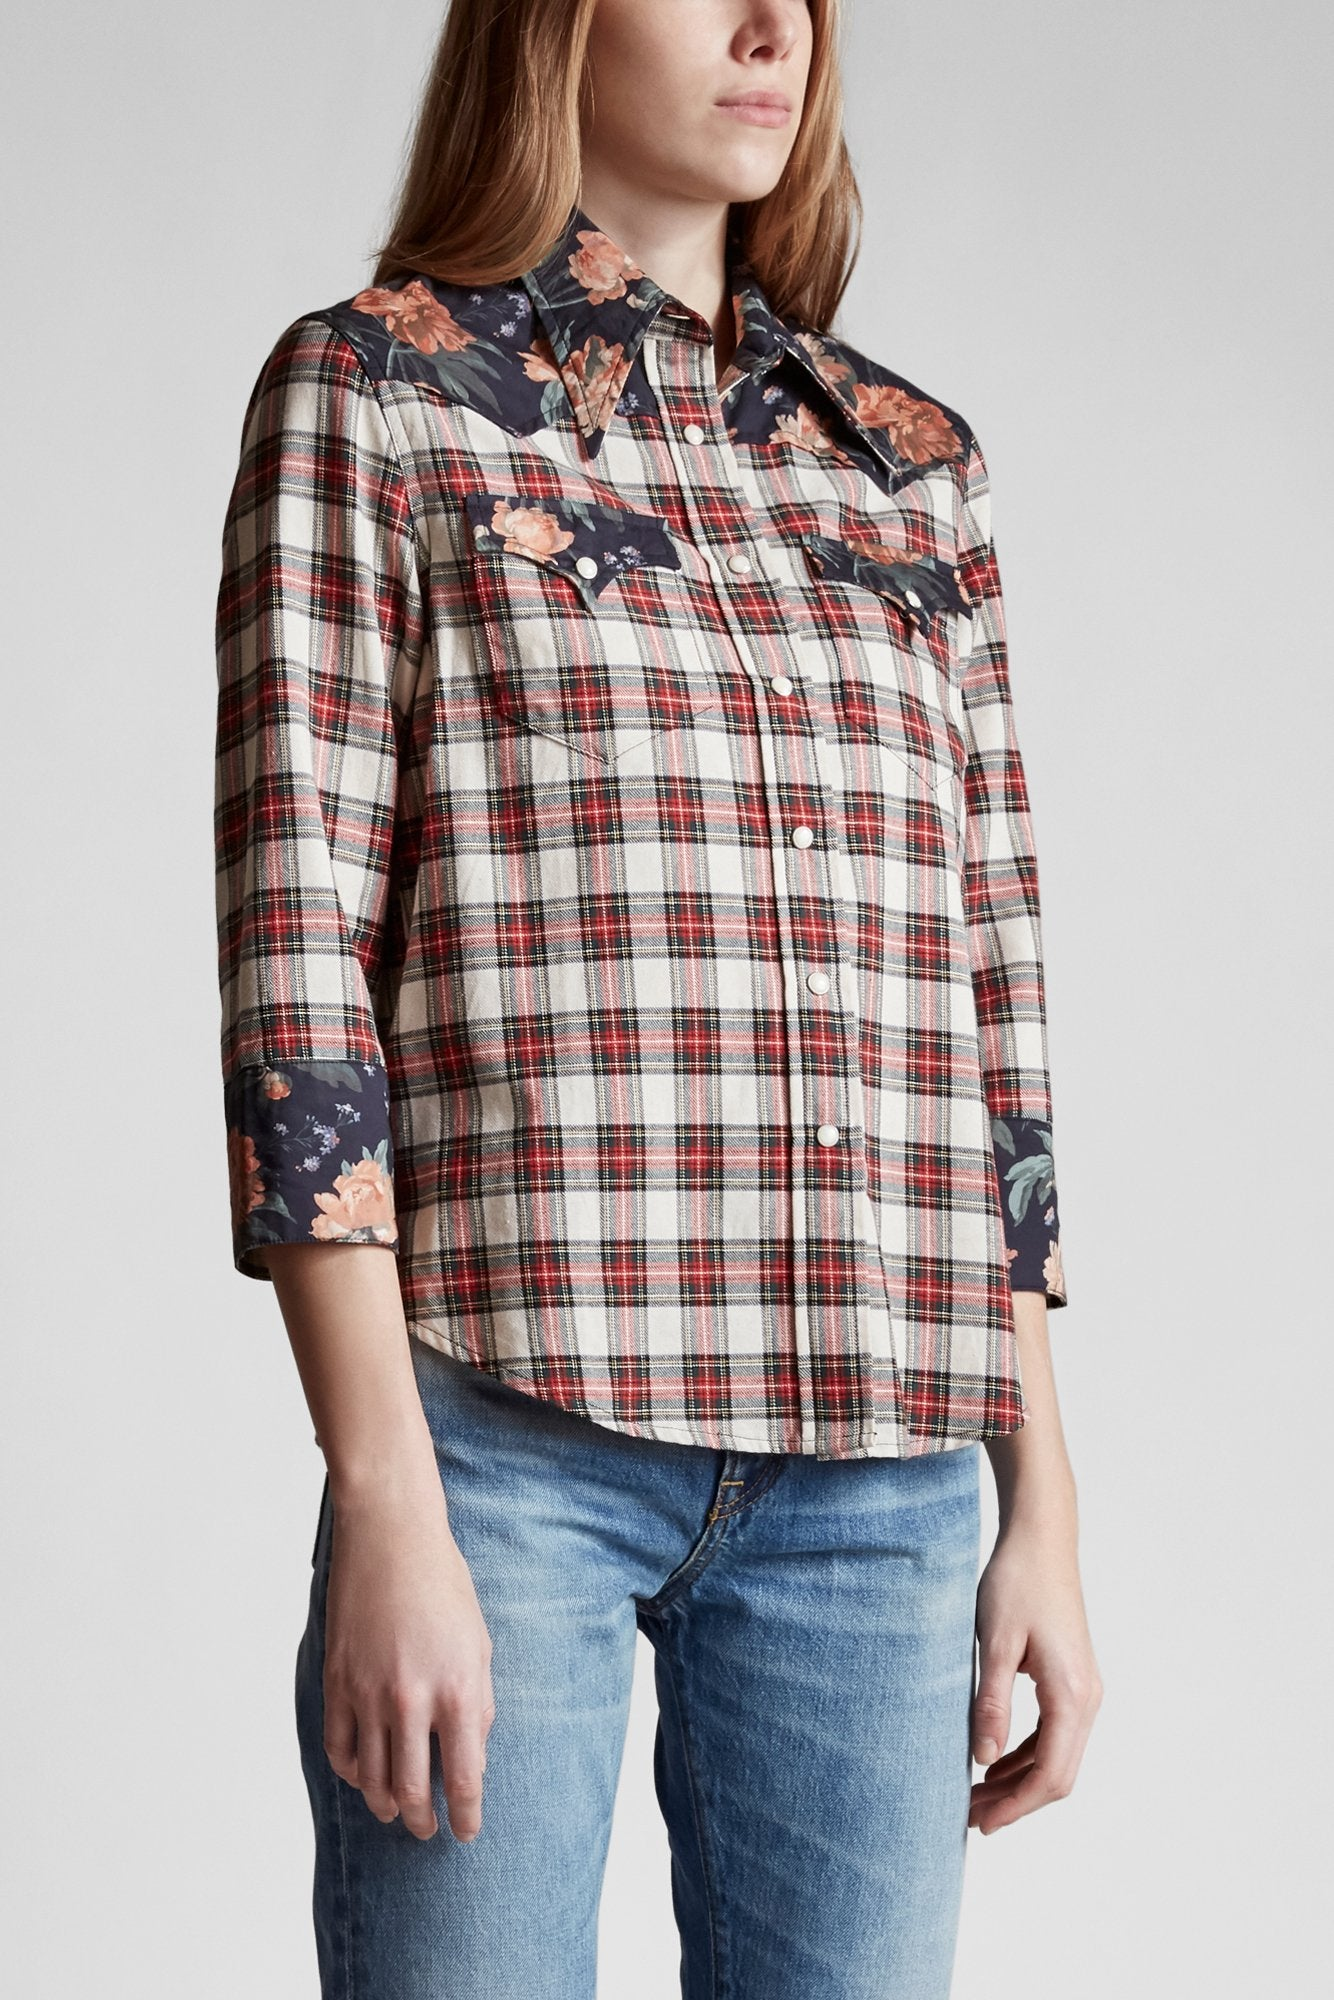 Exaggerated Collar Cowboy Shirt - Ecru with Black Floral